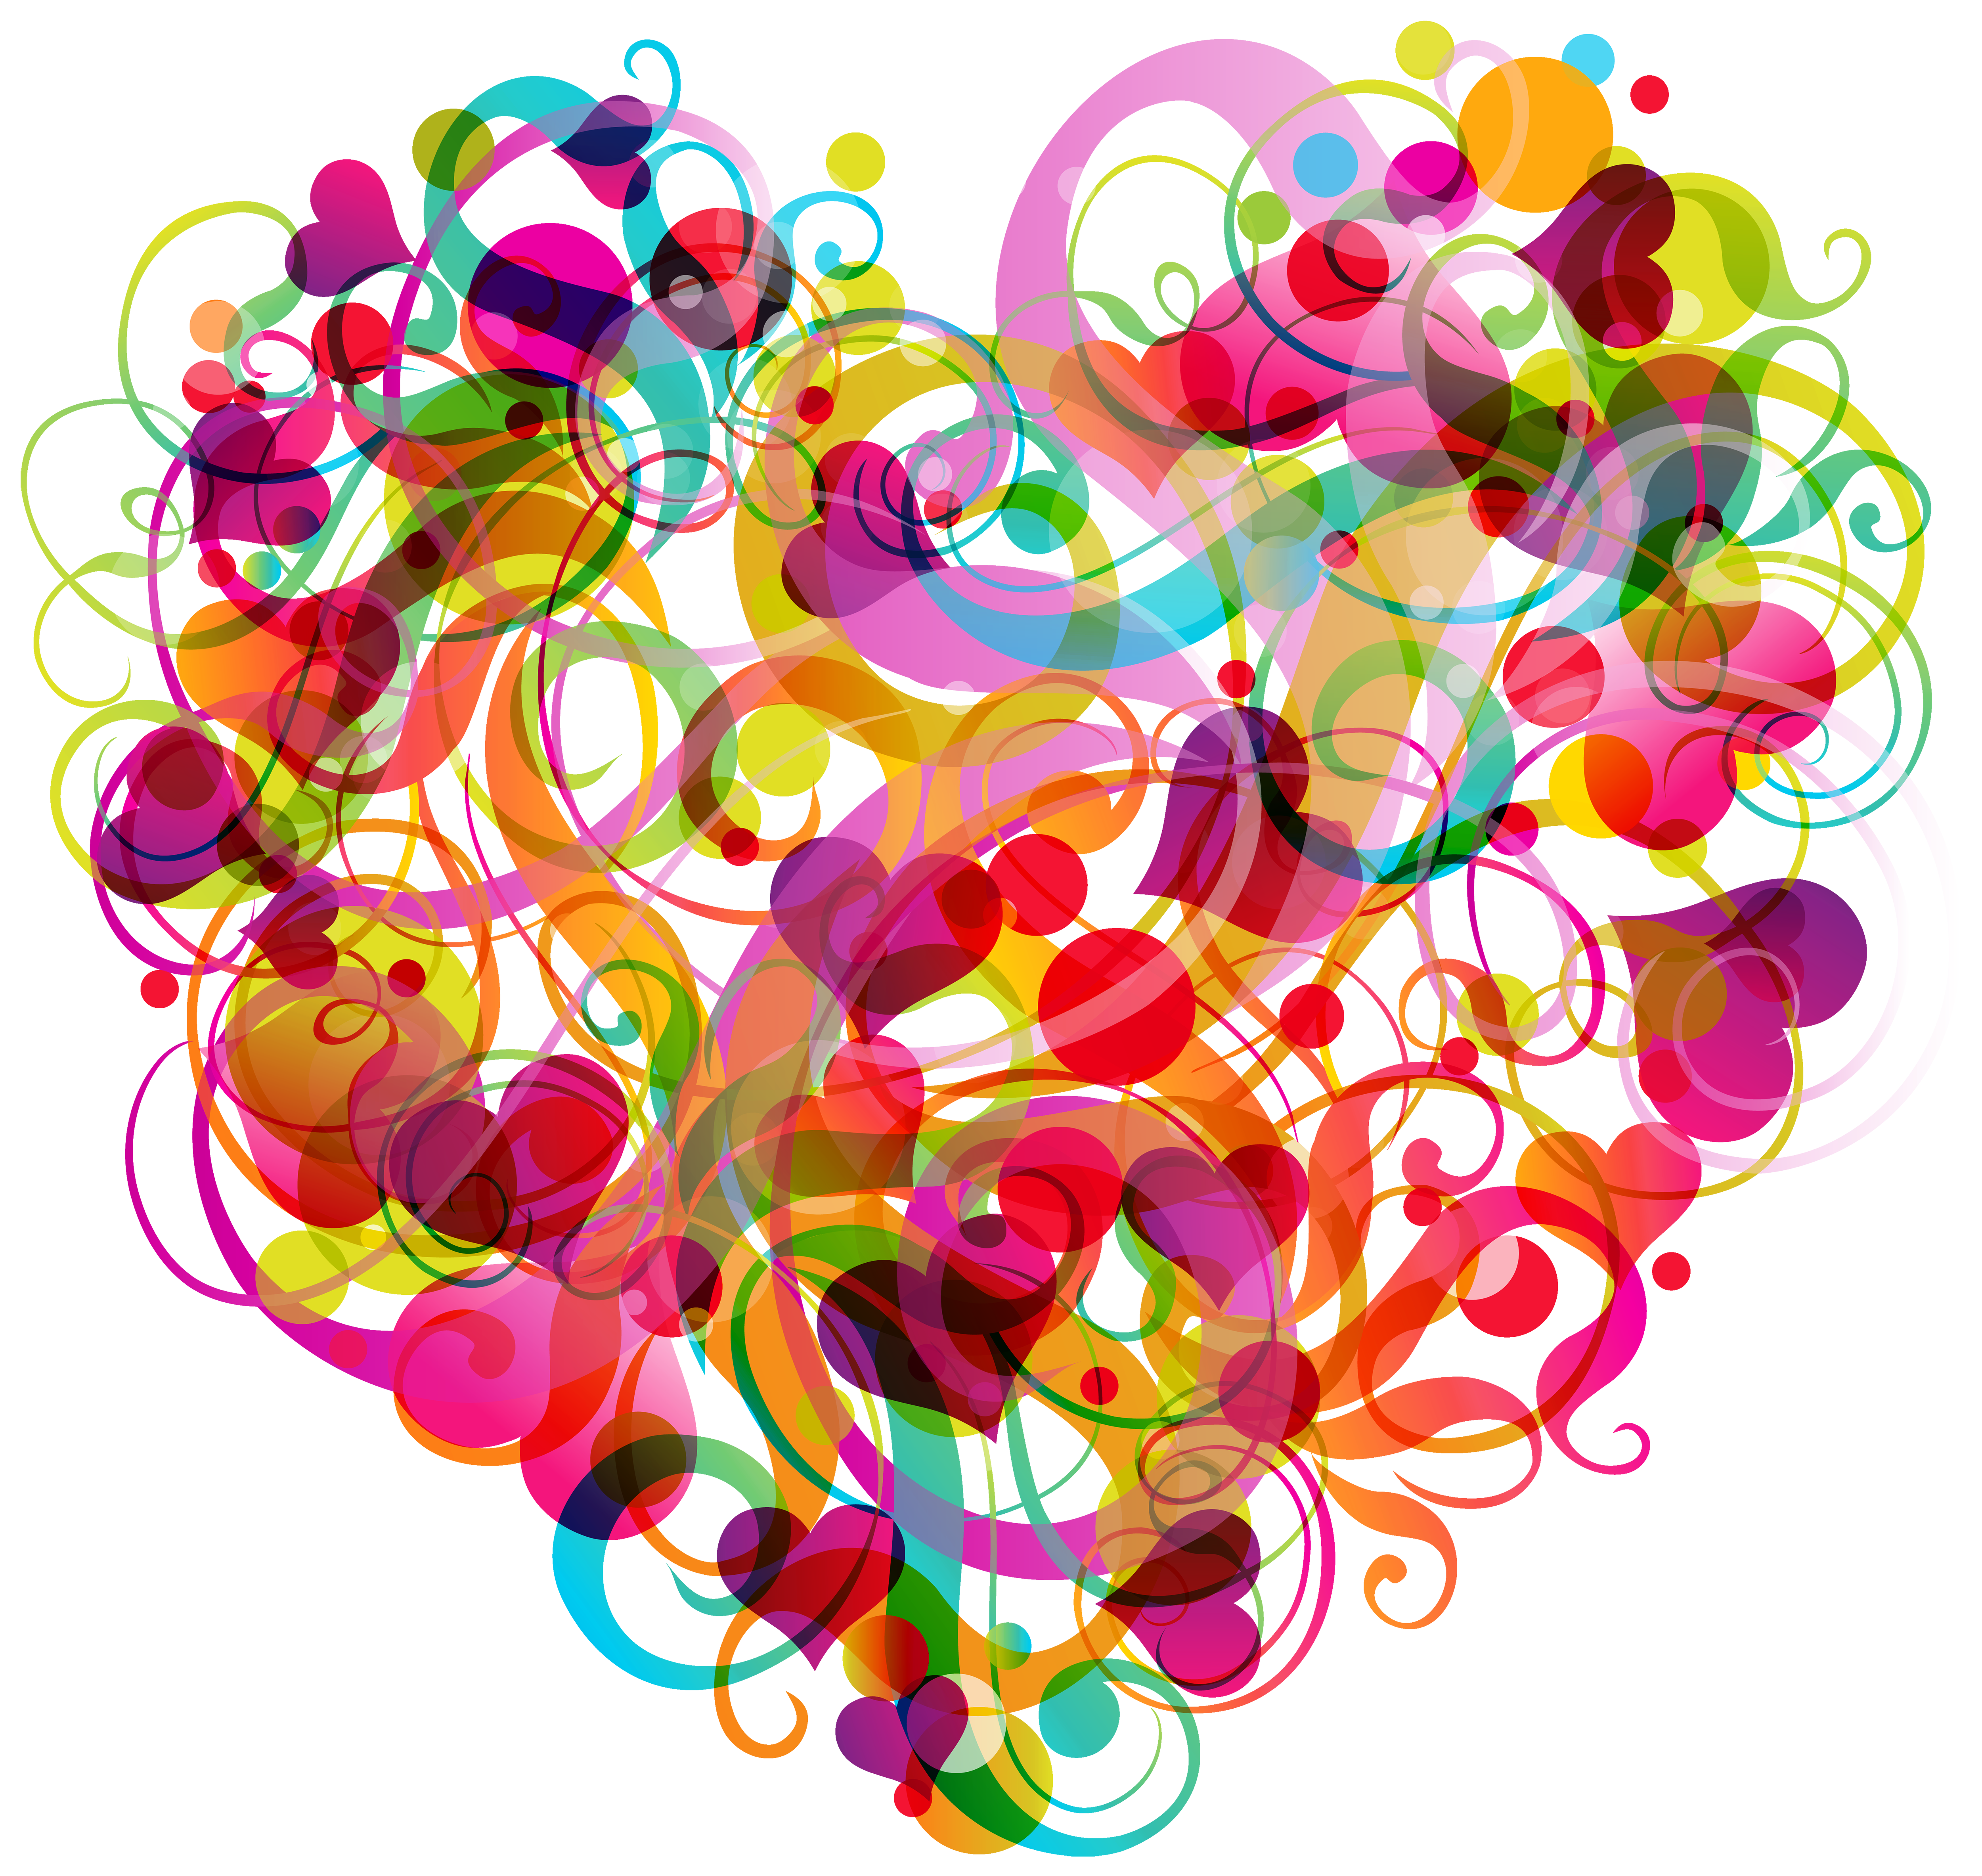 Abstract colorful heart png. Hearts clipart circle